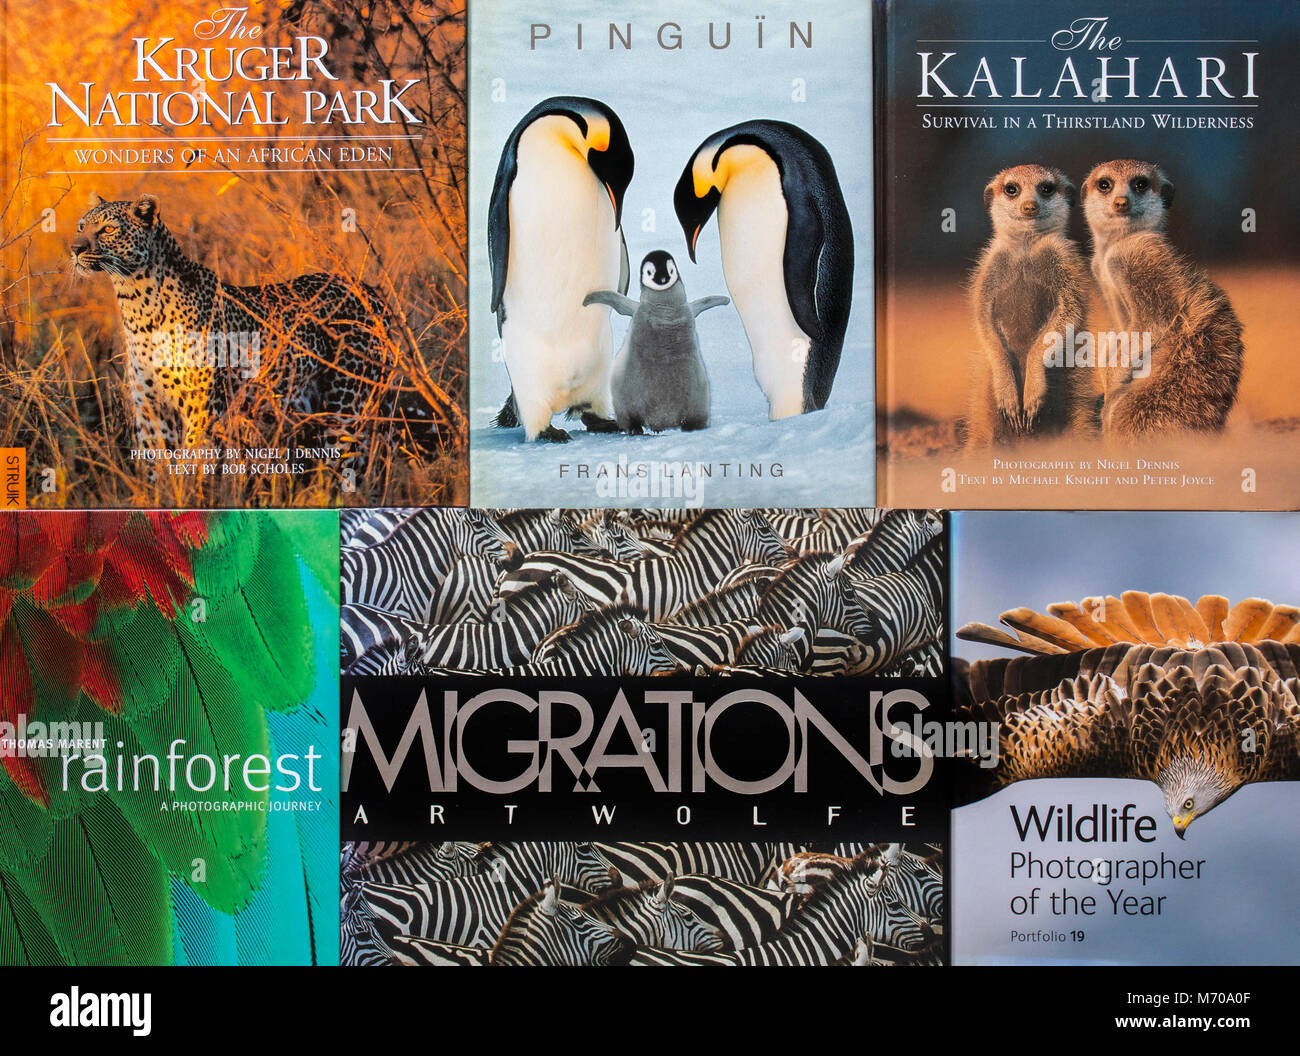 Collection of non-fiction hardcover coffee table books about wildlife photography showing animals - Stock Image